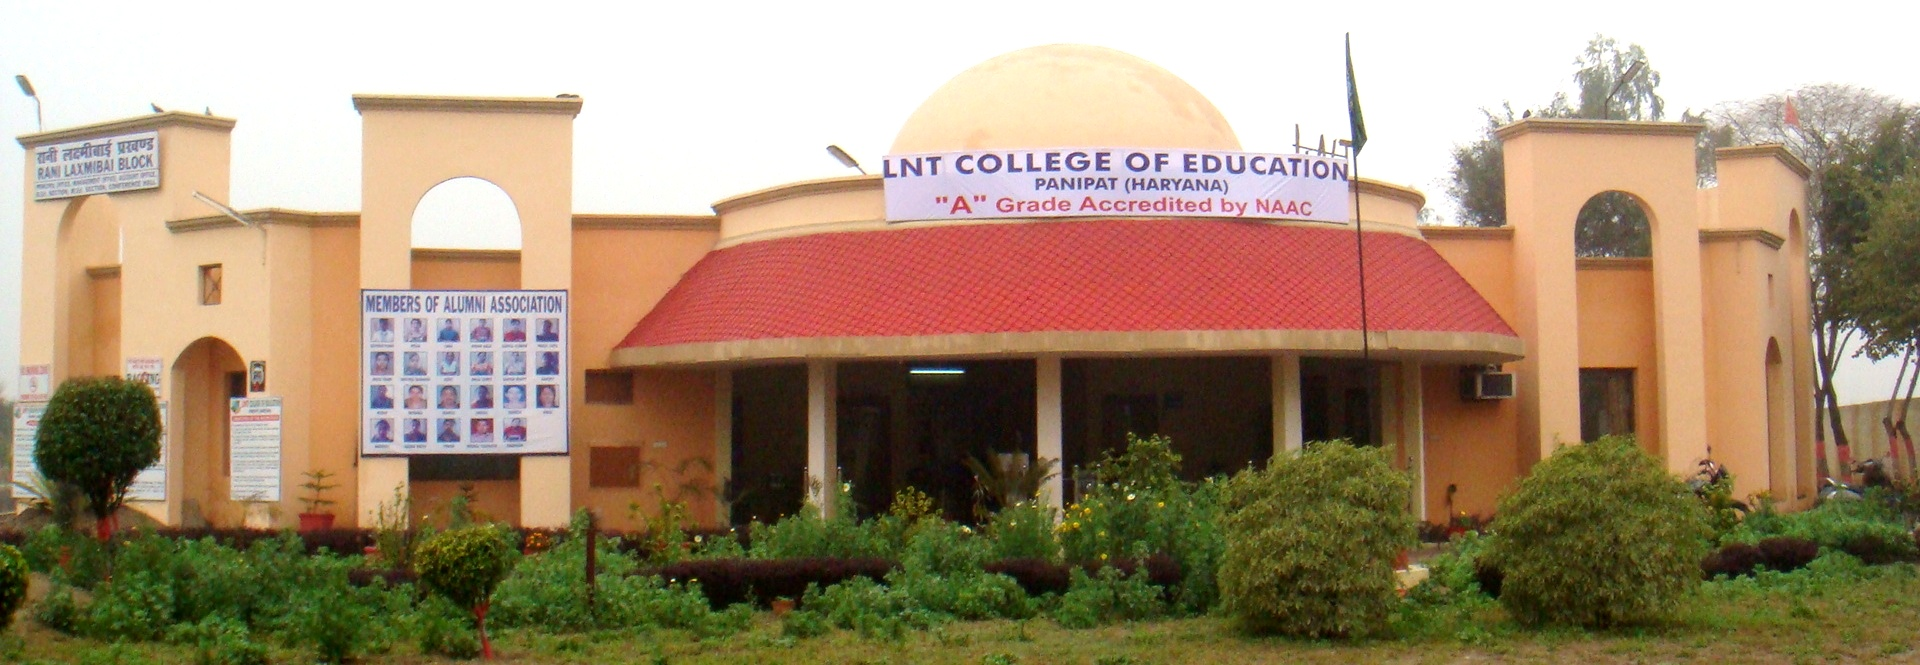 Brief History of Laxmi Narayan Tayal College of Education, Panipat Welcome to LNT College of Education